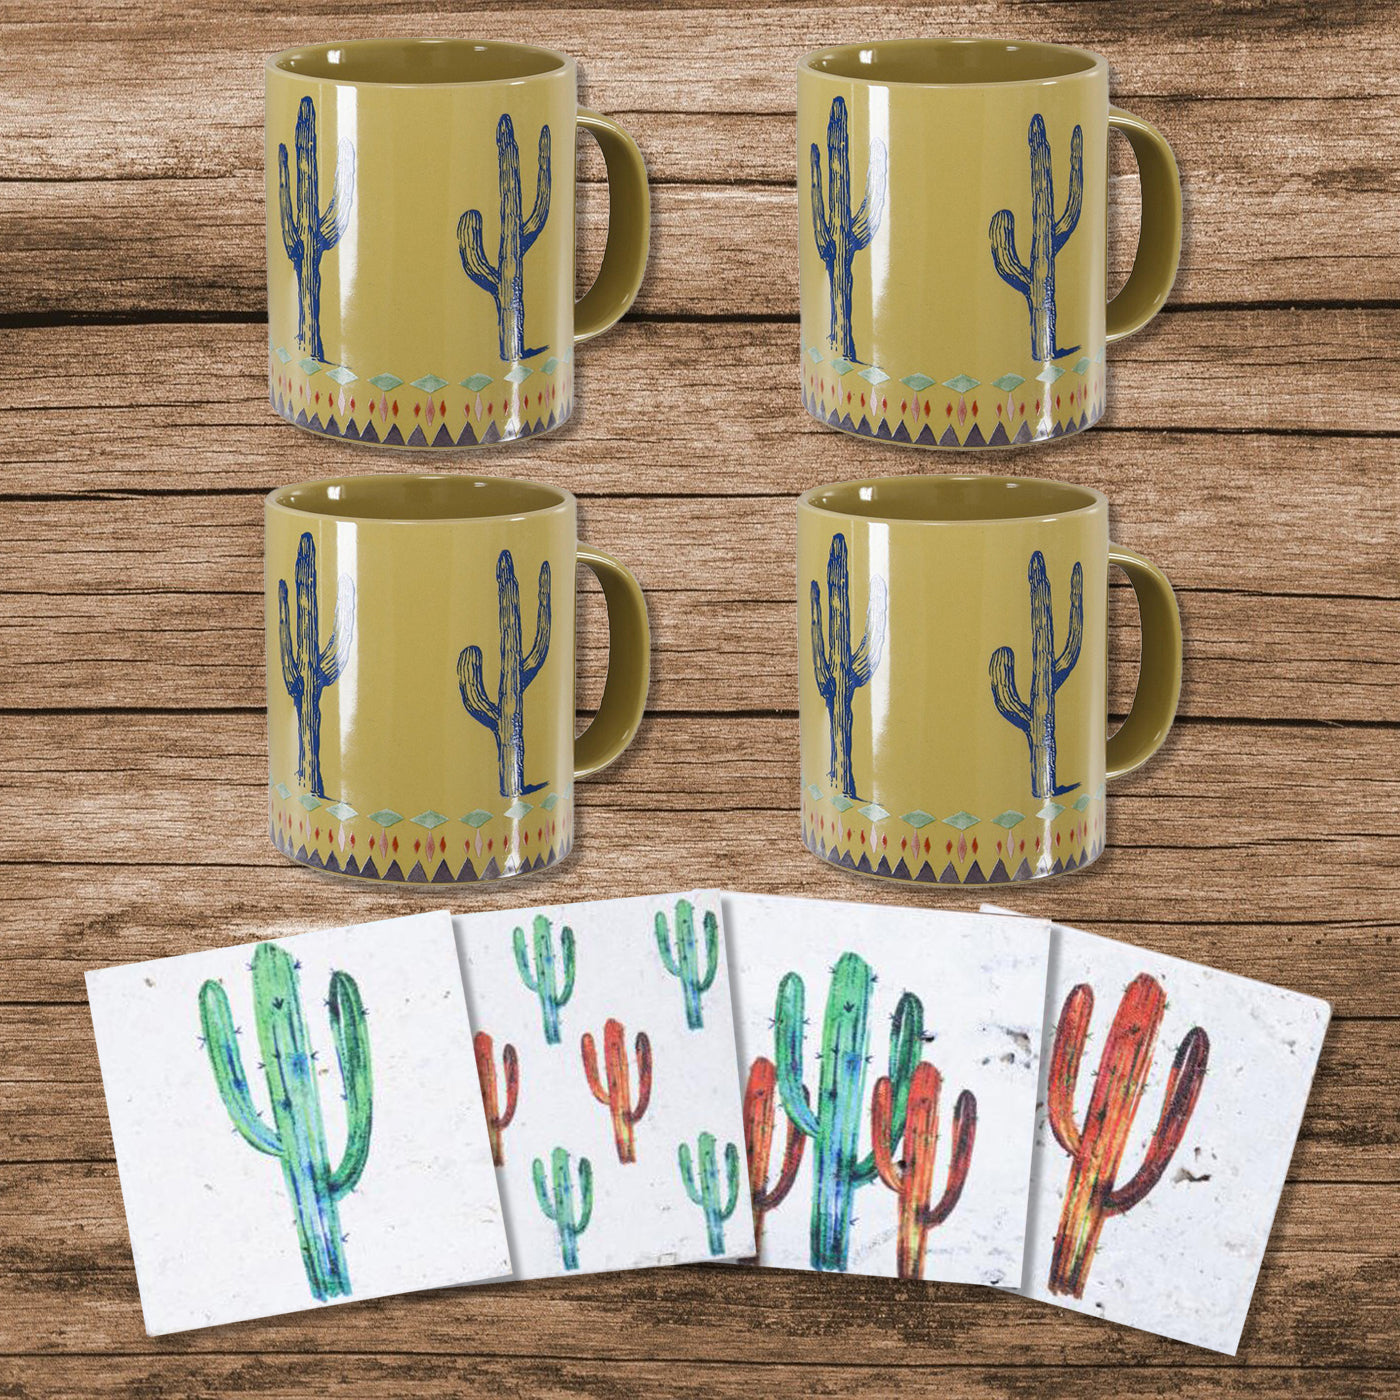 LF1756K1 - Cactus Coffee Mug and Coaster 8 Piece Set by HiEnd Accents